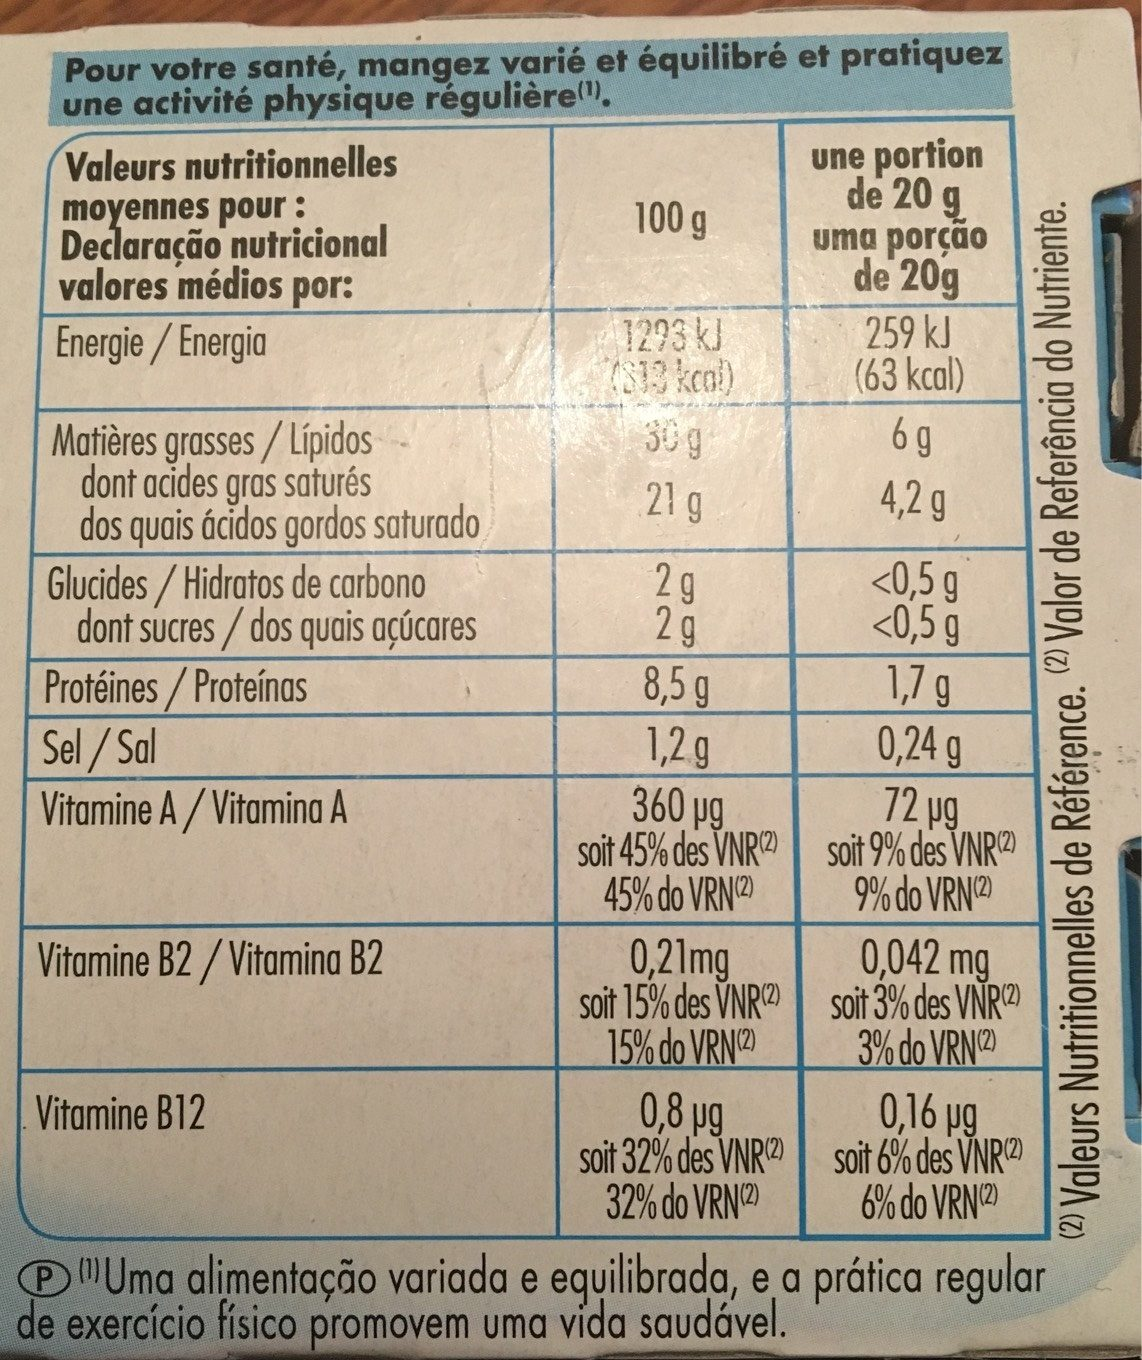 Beurre - Nutrition facts - fr